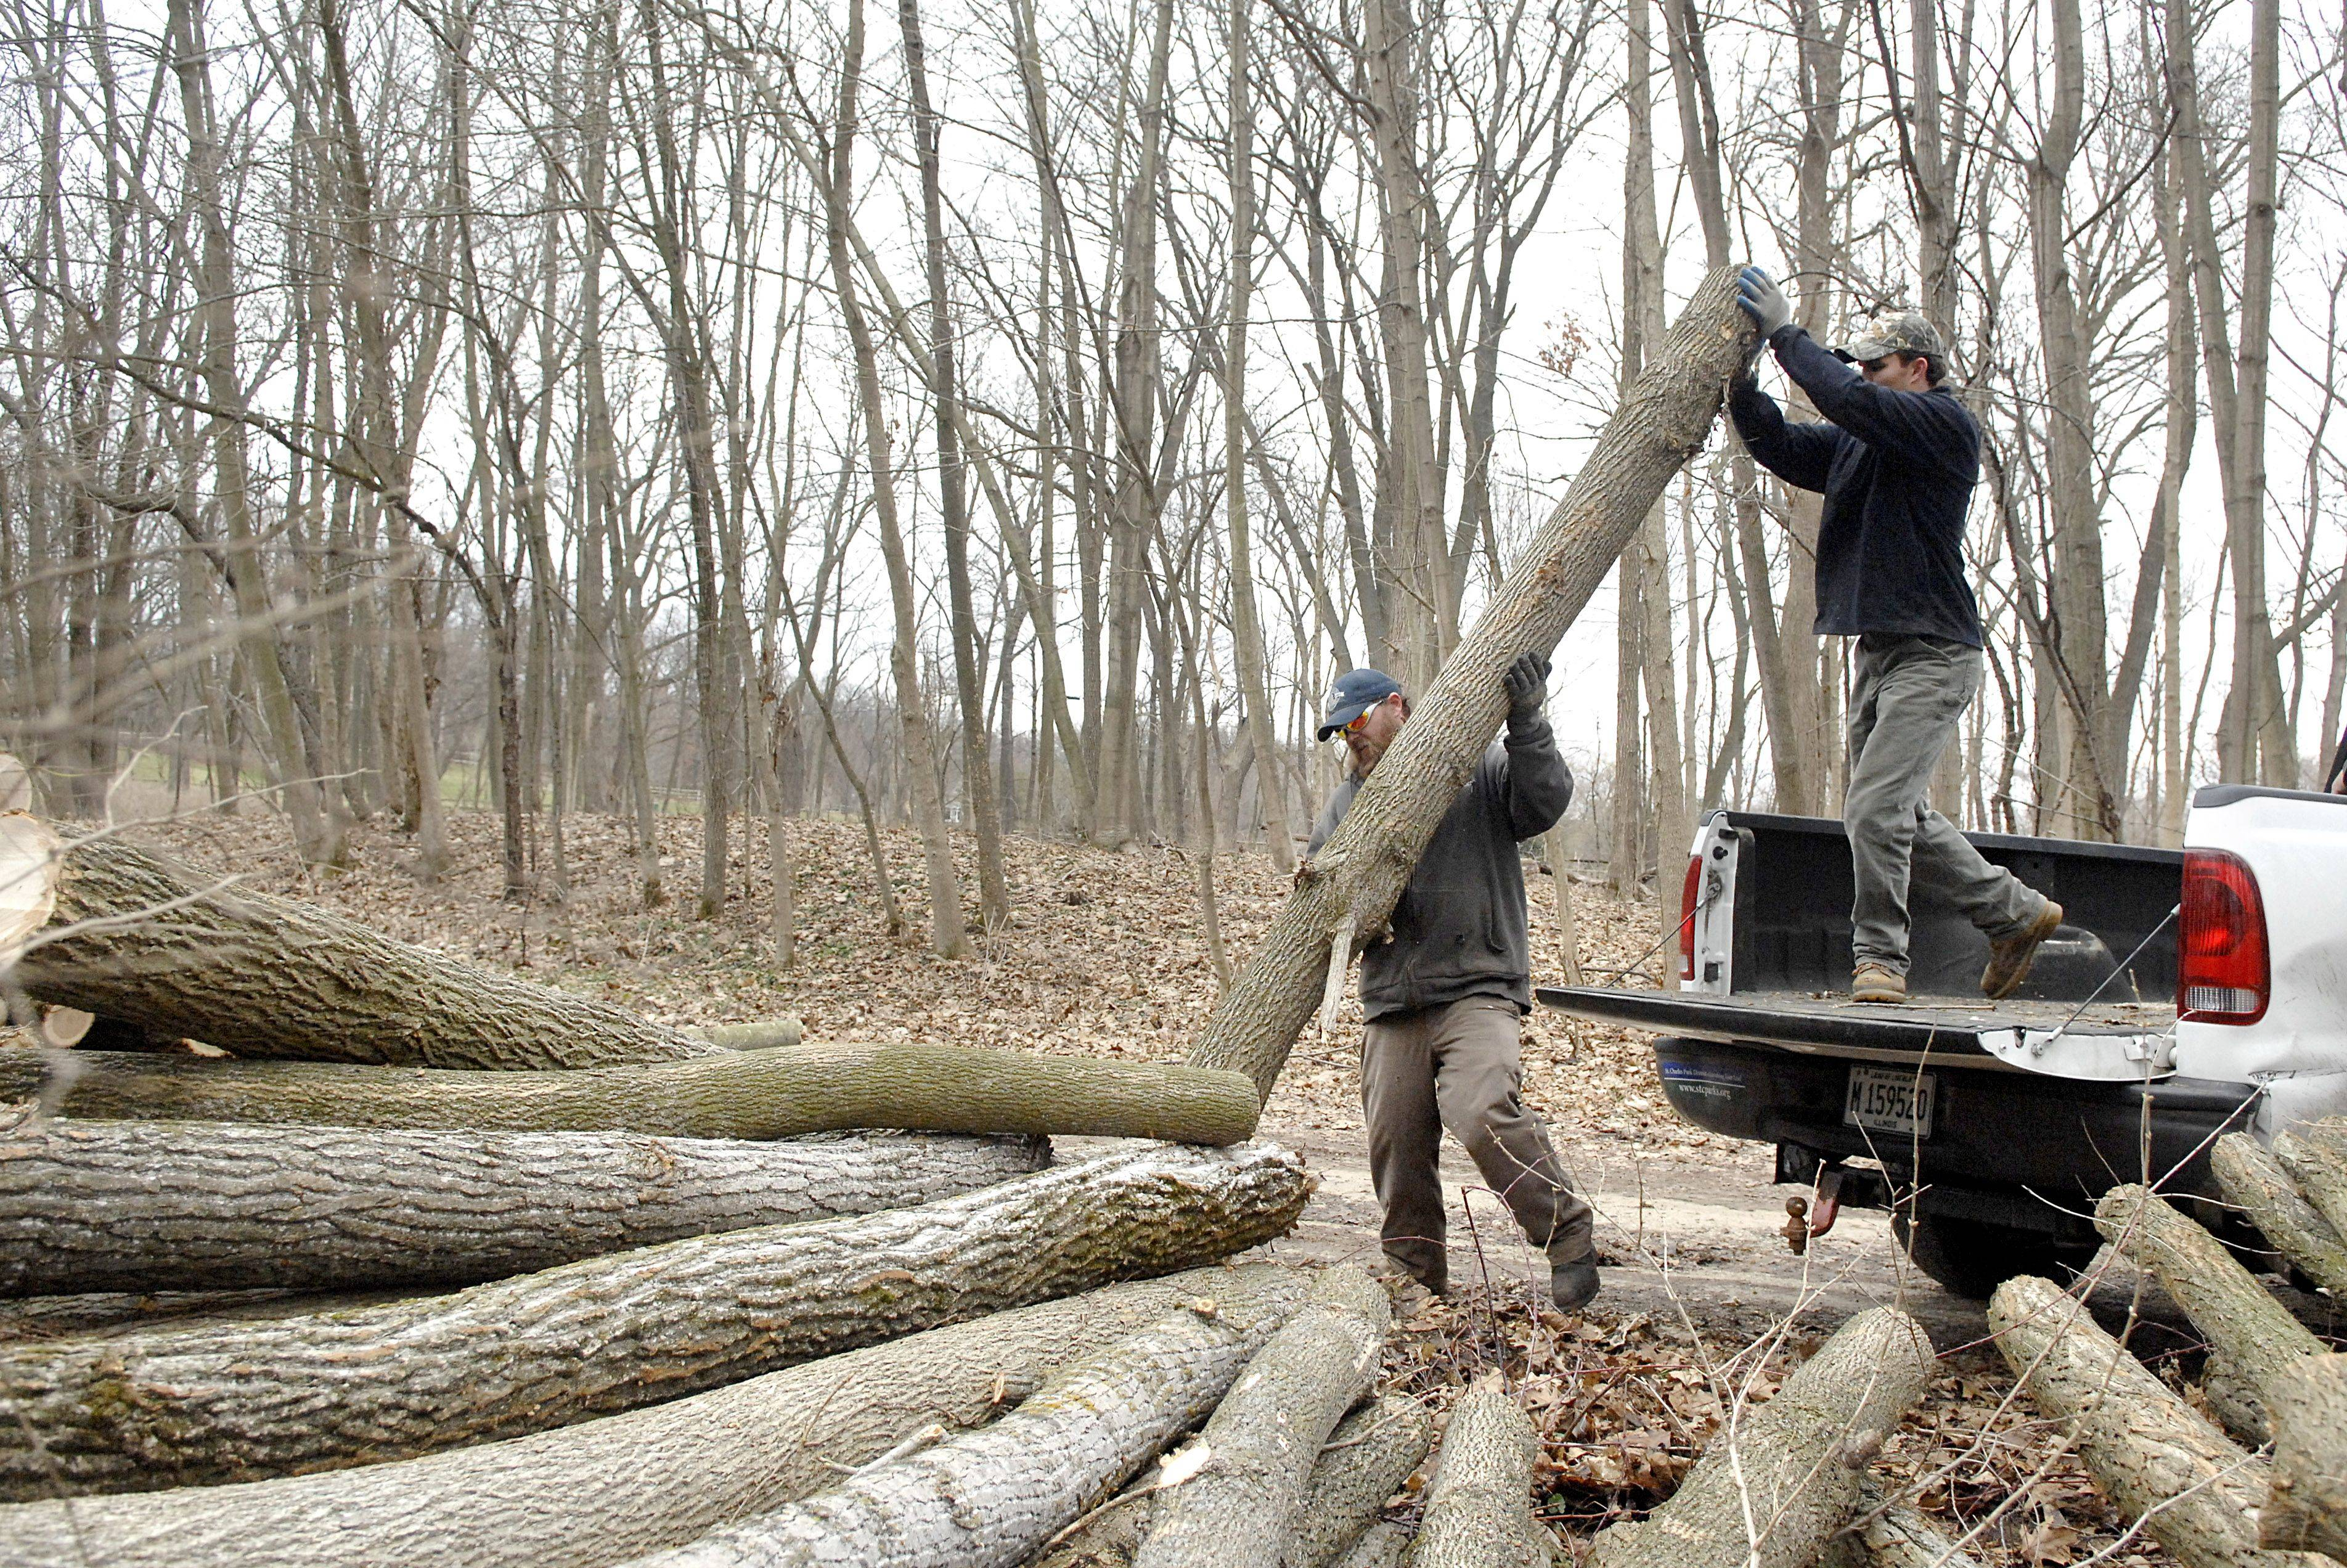 Josh Clark, left, and Eric Hoogveld with the St. Charles Park District unload and stack the last of 16 ash trees they and a crew cut down at the Norris Woods Forest Preserve in St. Charles on Thursday, March 24. The trees were cleared along the trail at the preserve as part of the soon to start watershed and stabilization project. 30 ash trees were cut down over two days. The park district clears about 5% of their ash trees every winter because of the insect.